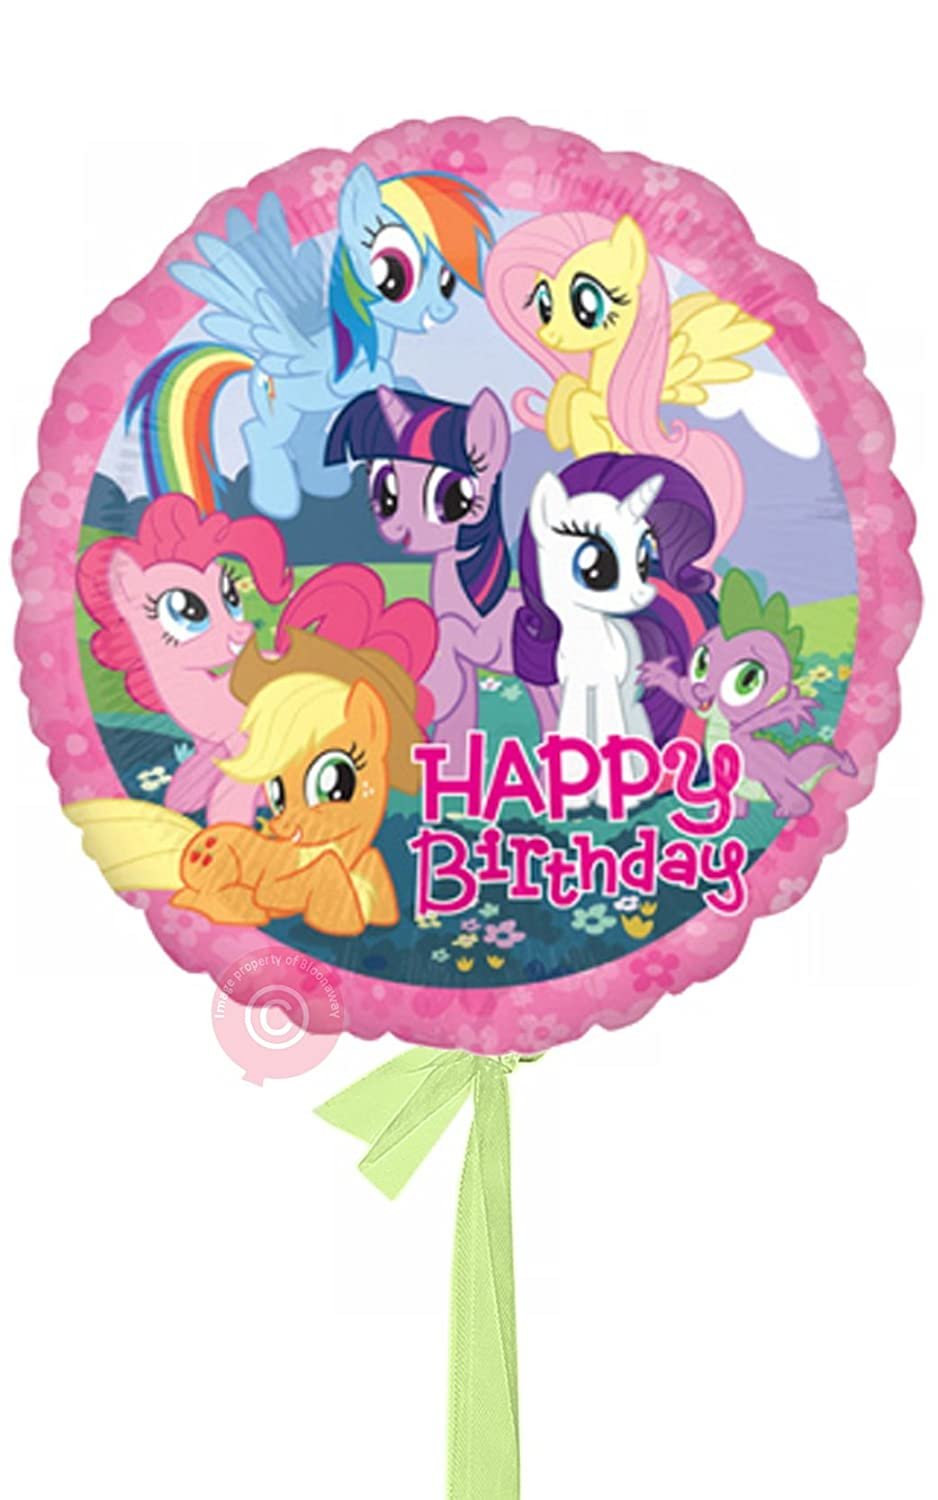 Single Balloon My Little Pony Happy Birthday  Inflated Birthday Helium Balloon Delivered in a Box  Biggest Bouquet  10 Balloons  Bloonaway